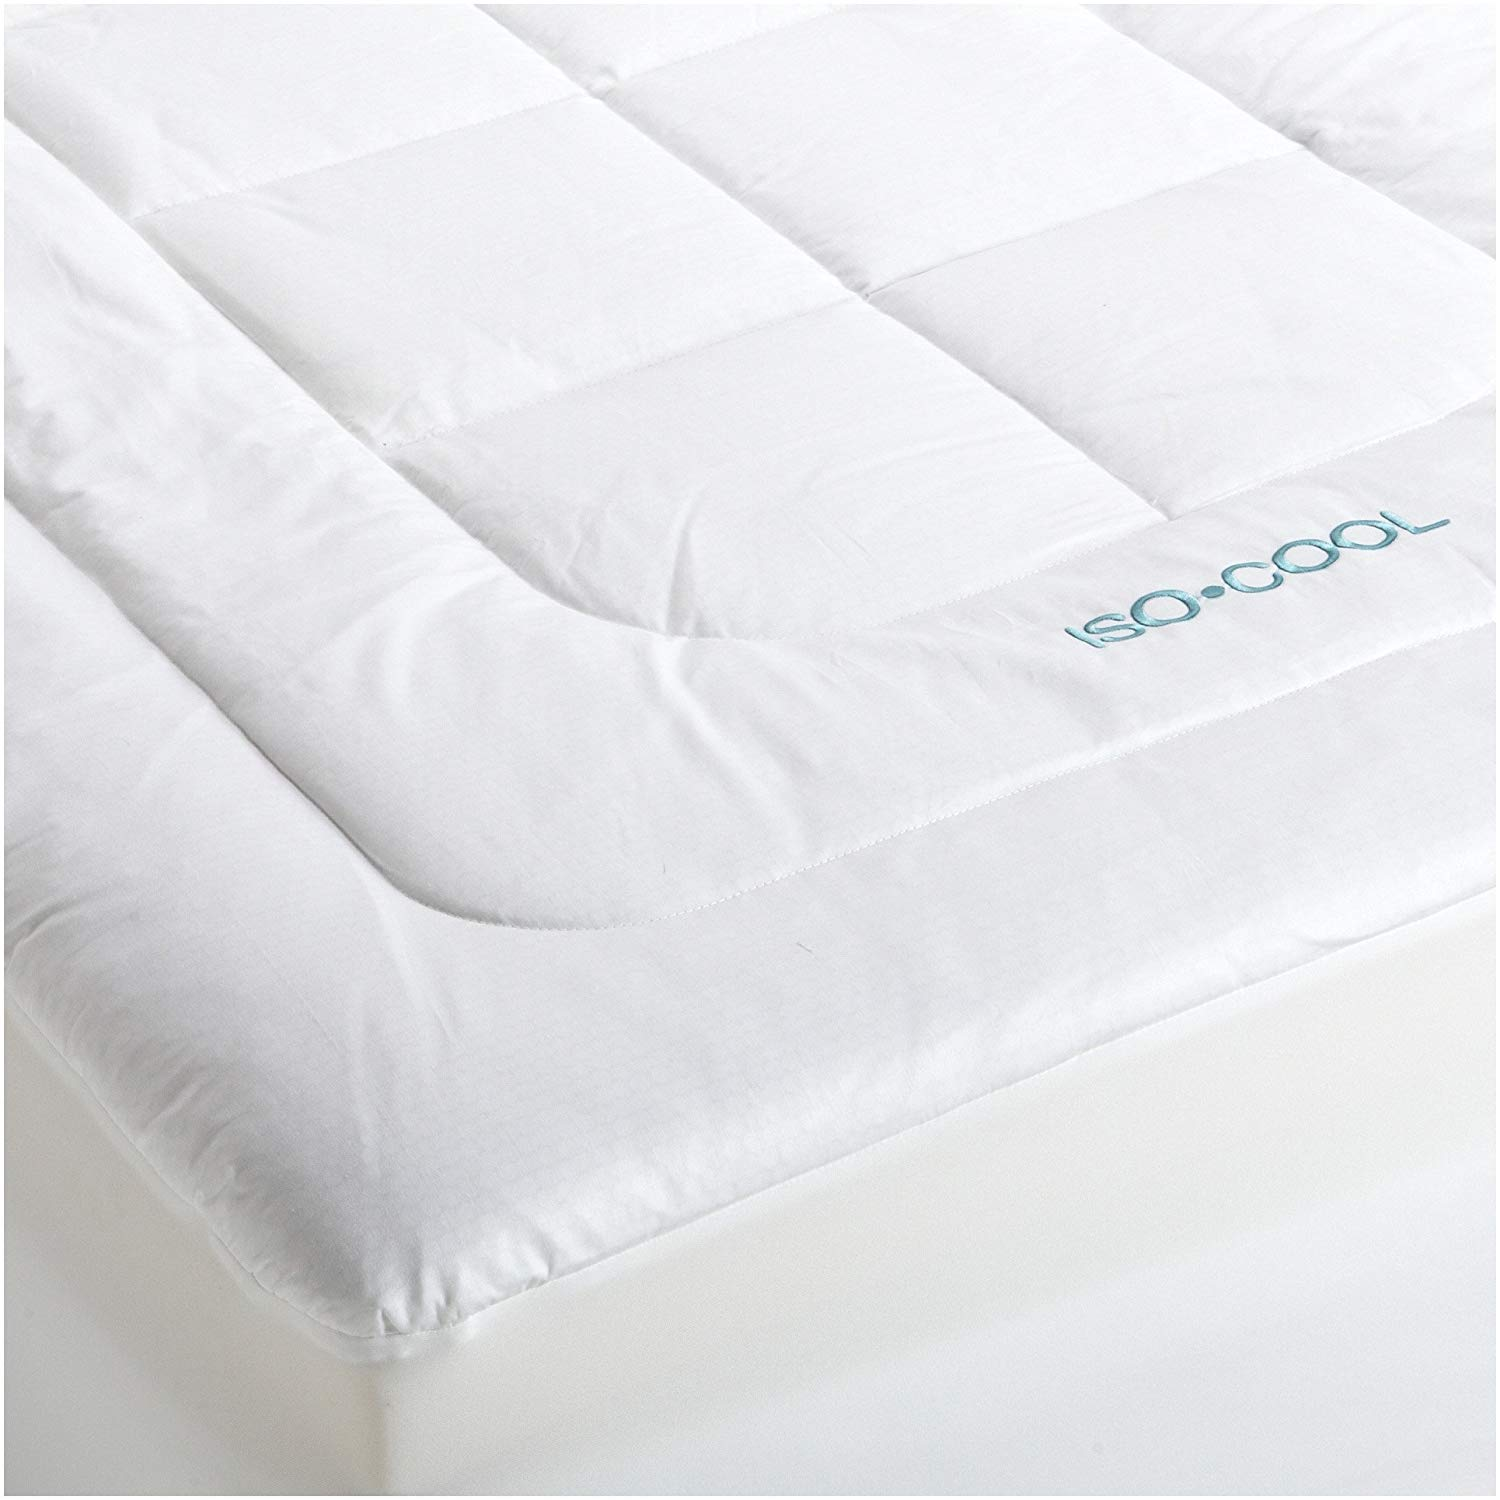 SleepBetter best cooling mattress pad review and buying guide by www.dailysleep.org